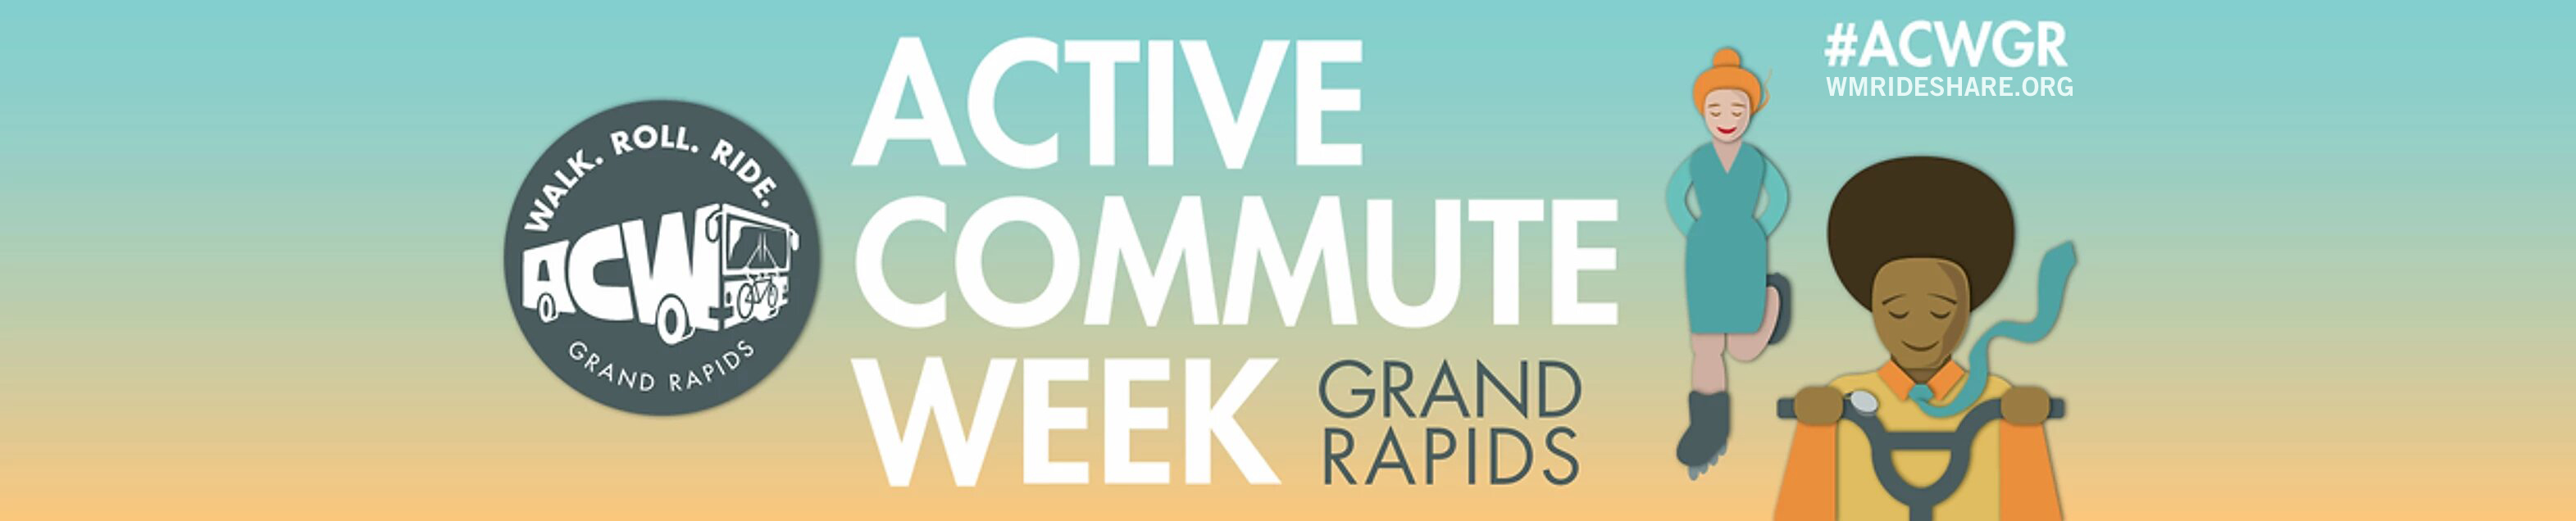 Walk. Roll. Ride. Active Commute Week, Grand Rapids, Michigan